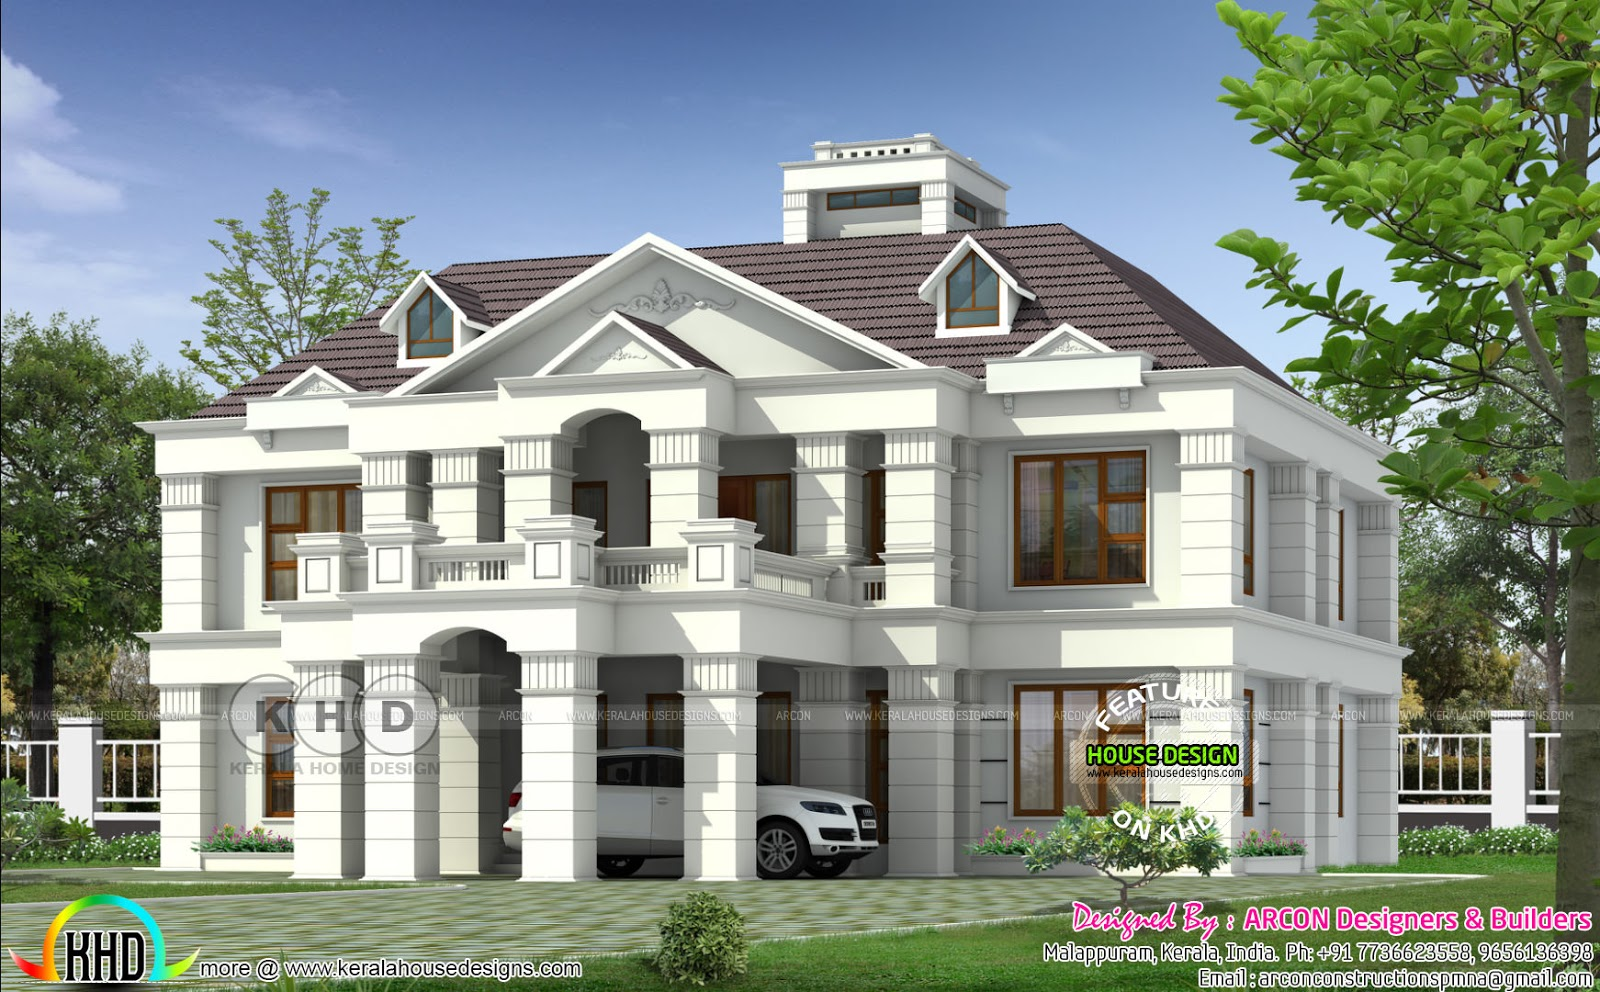 Colonial home plan by arcon designers builders kerala Colonial home builders